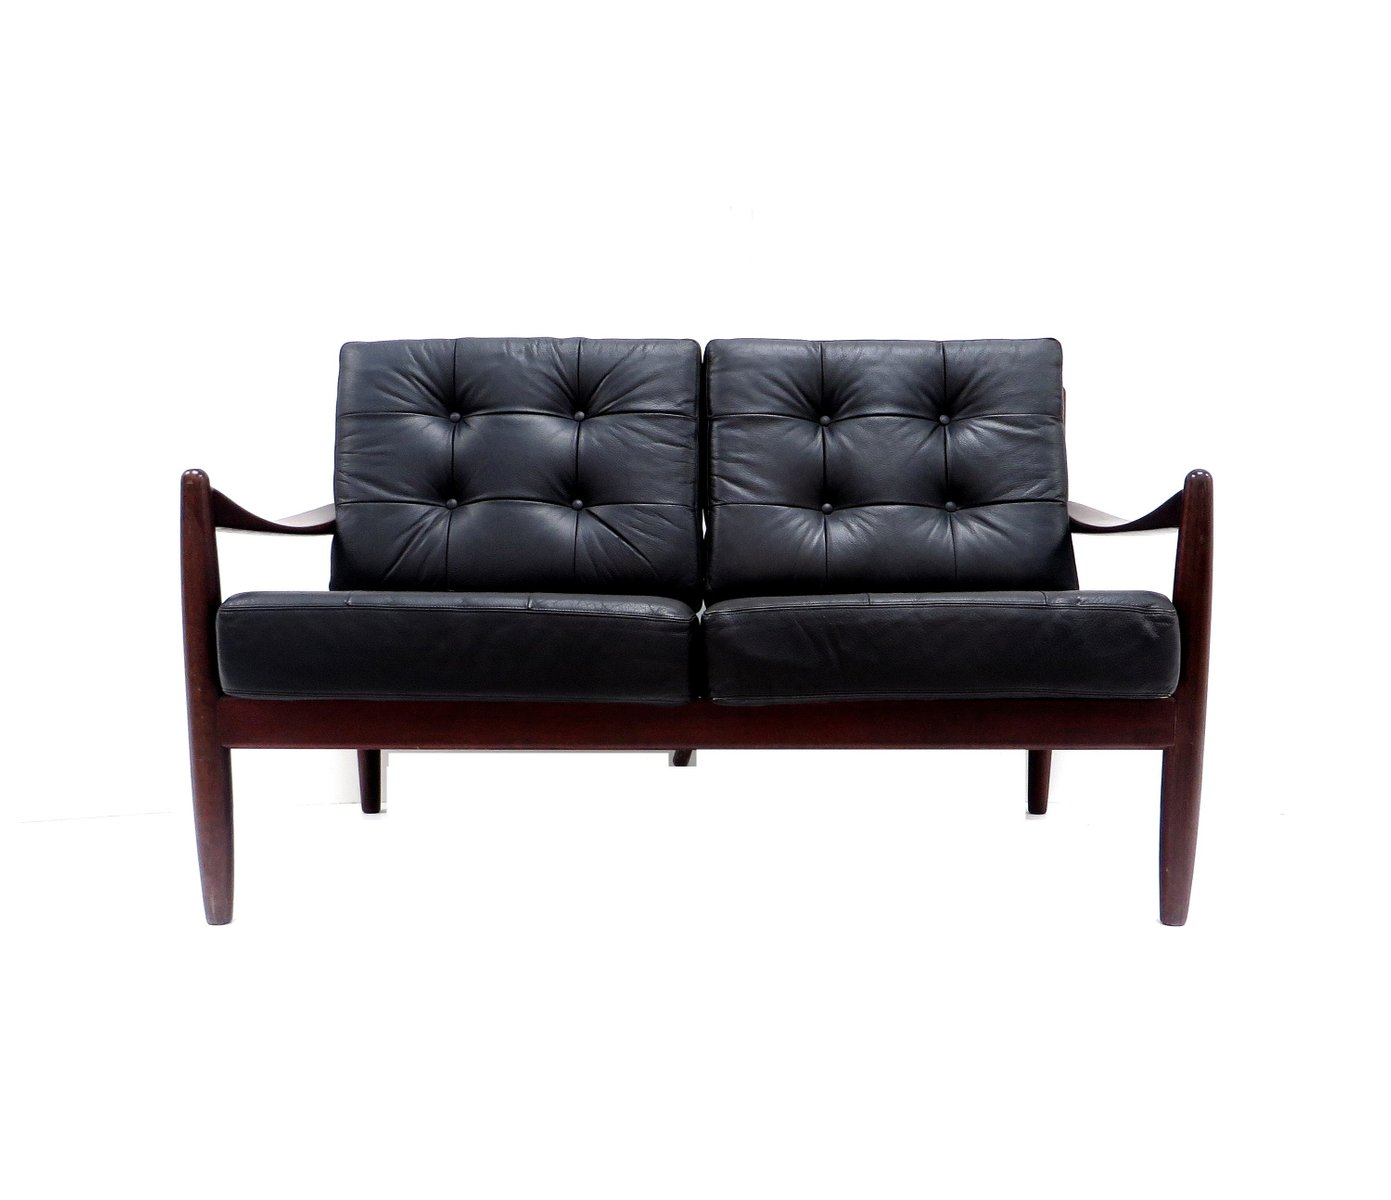 d nisches 2 sitzer ledersofa bei pamono kaufen. Black Bedroom Furniture Sets. Home Design Ideas